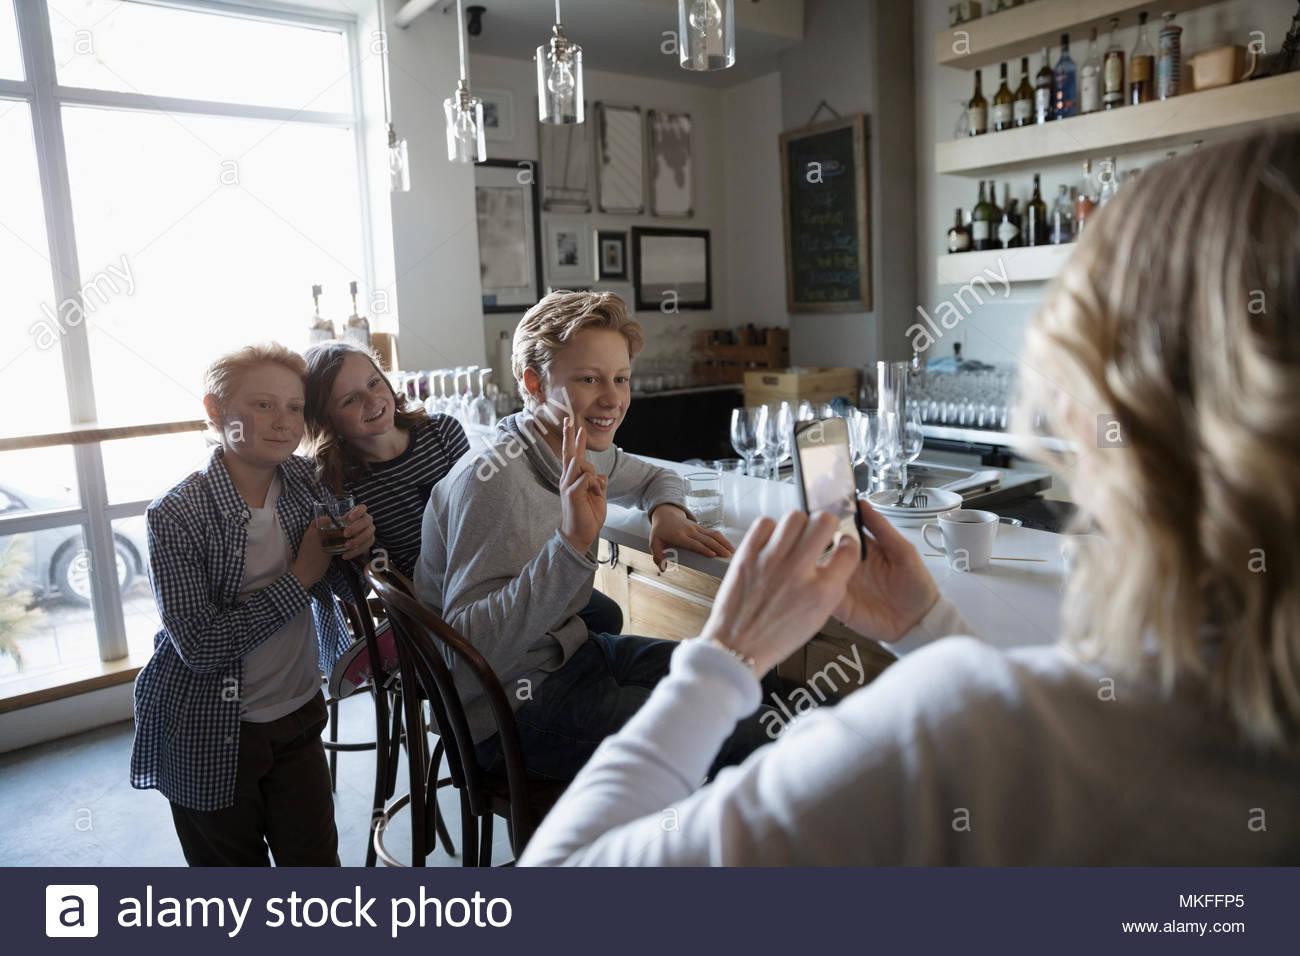 Mother with camera phone photographing children in bar - Stock Image